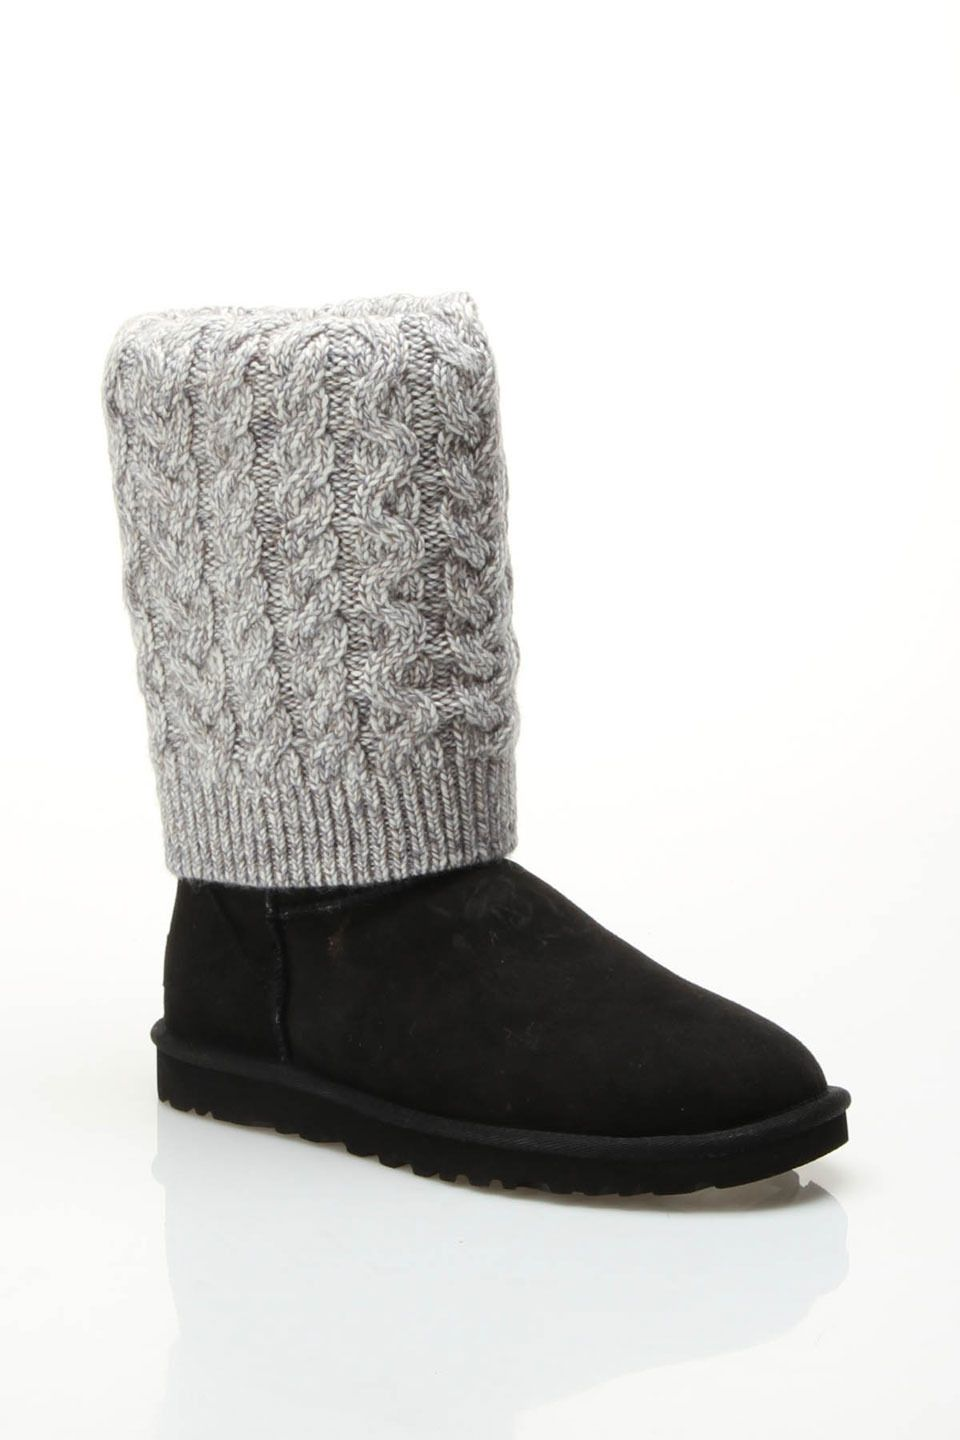 Ugg Ladies' Tularosa Route Boots In Black Multicolor.